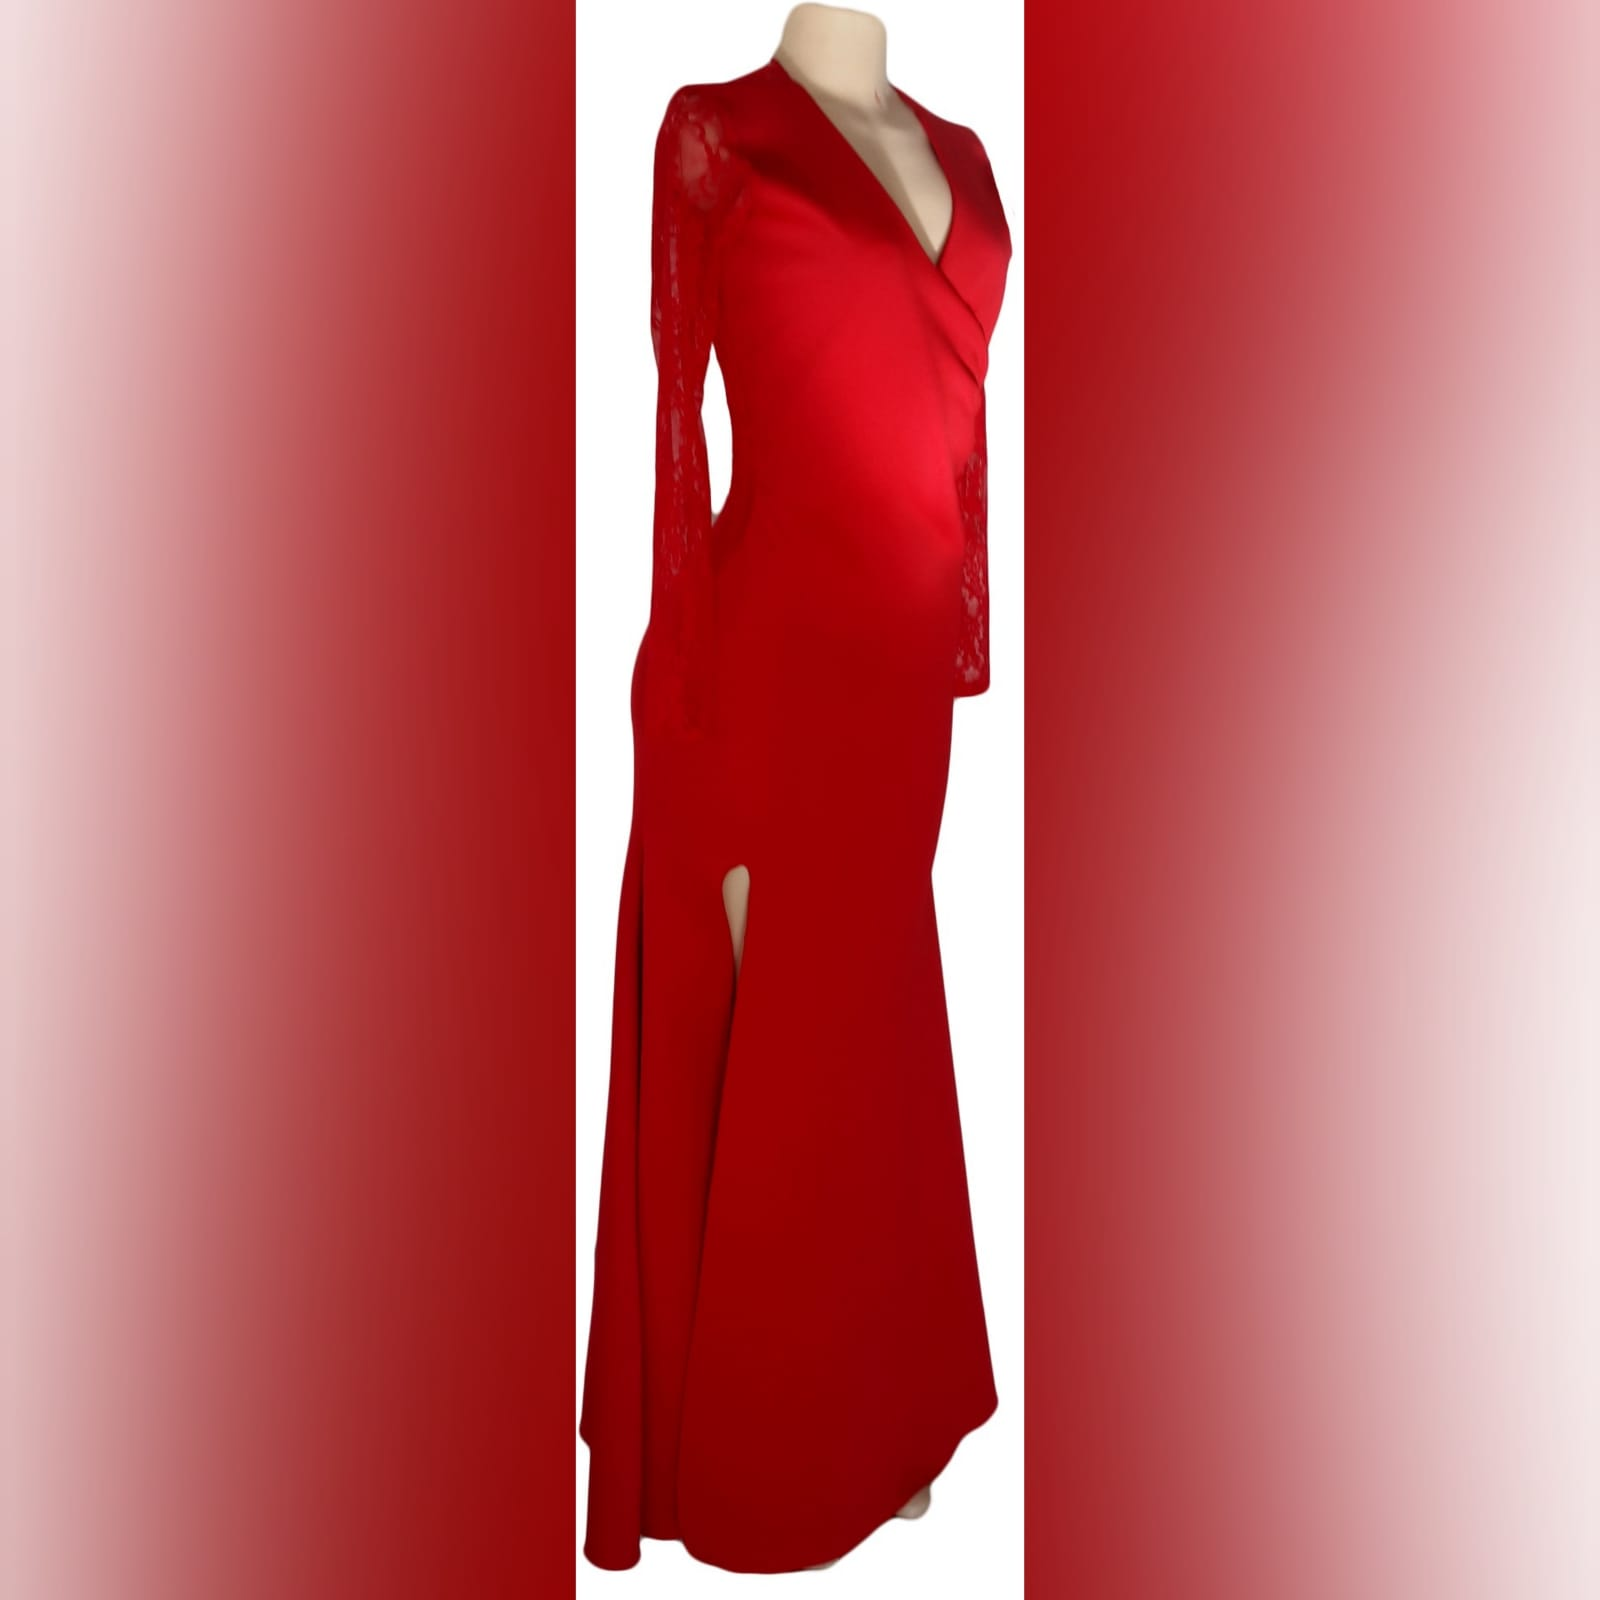 Long red cross busted evening party dress 6 long red cross busted evening party dress with long lace sleeves. With back neckline in lace. With a slit